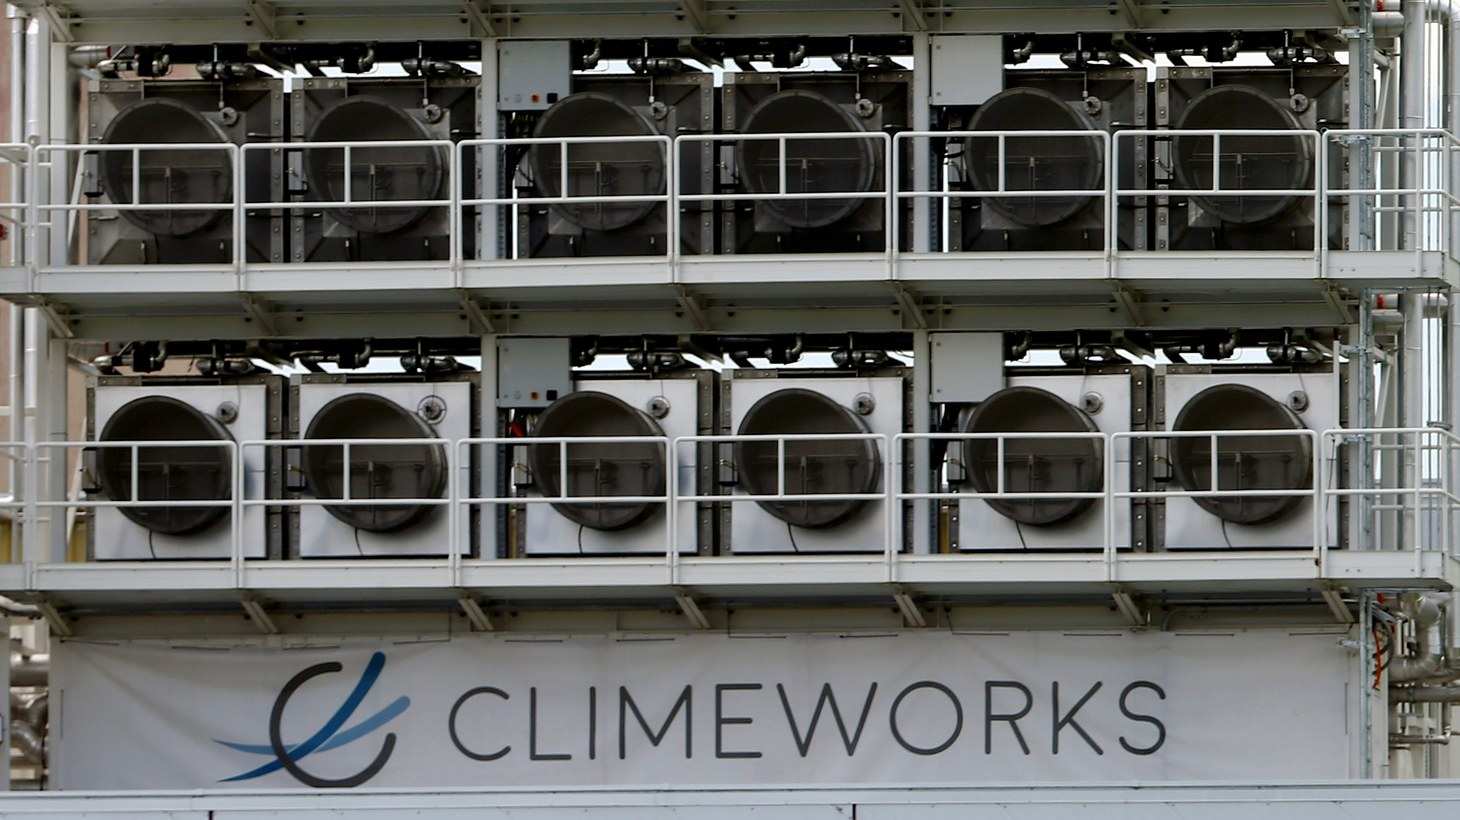 Swiss Climeworks AG has developed this facility to capture CO2 from the air. The device is in Hinwil, Switzerland, July 18, 2017.